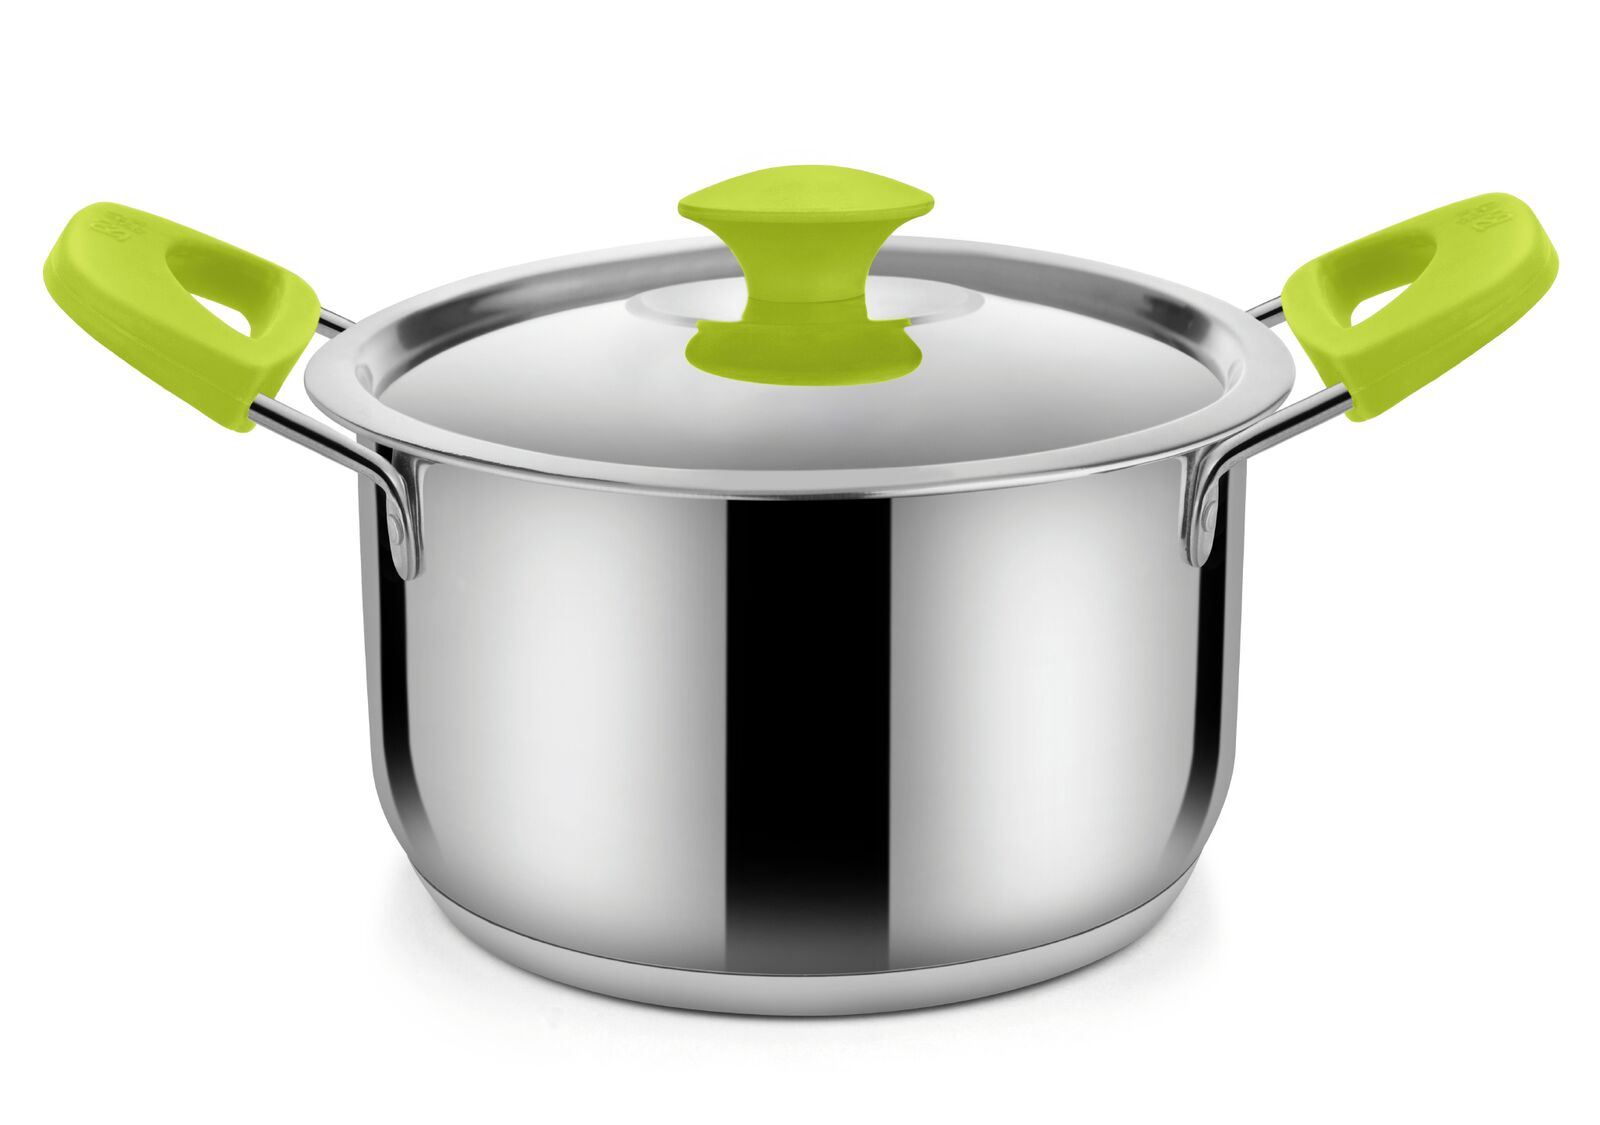 Bonita Oven Round With Steel Lid 2000 Ml Stainless Steel With Silicone Sauce Pans in Green Colour by Bonita